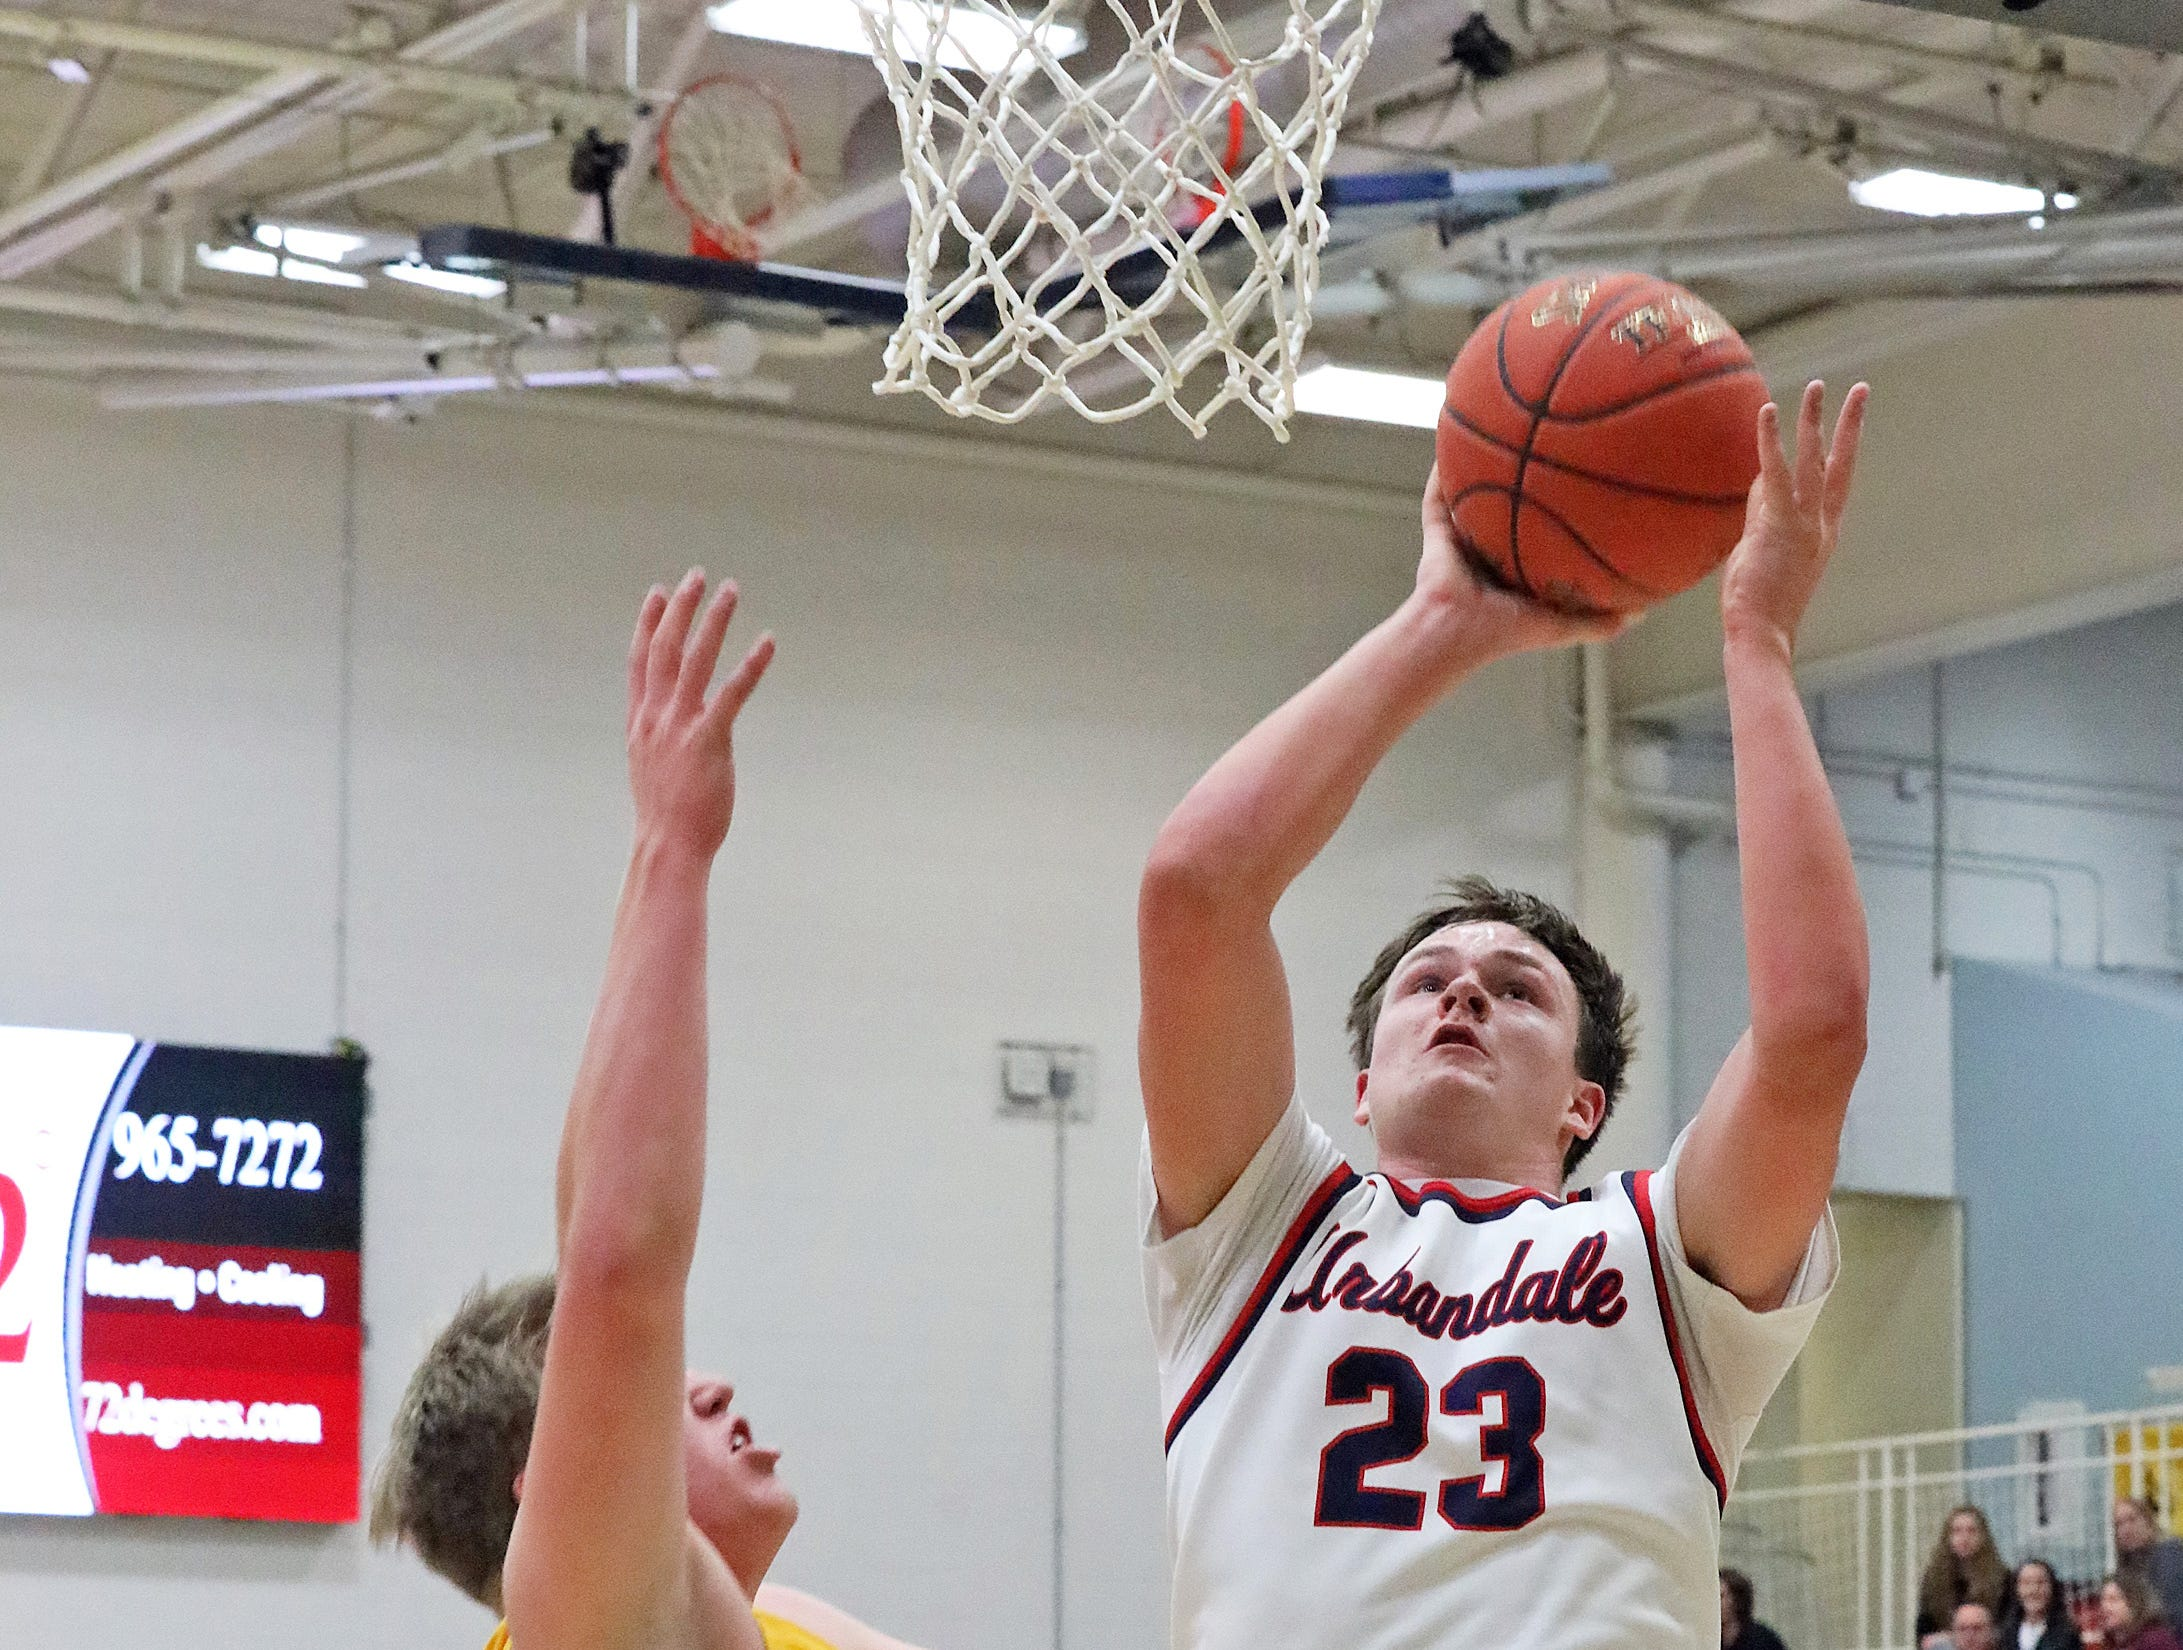 Urbandale senior Lucas Strain scores two points as the Ankeny Hawks compete against the Urbandale J-Hawks in high school basketball on Friday, Dec. 14, 2018 at Urbandale High School. Ankeny won 62 to 52 to remain undefeated at 6-0.